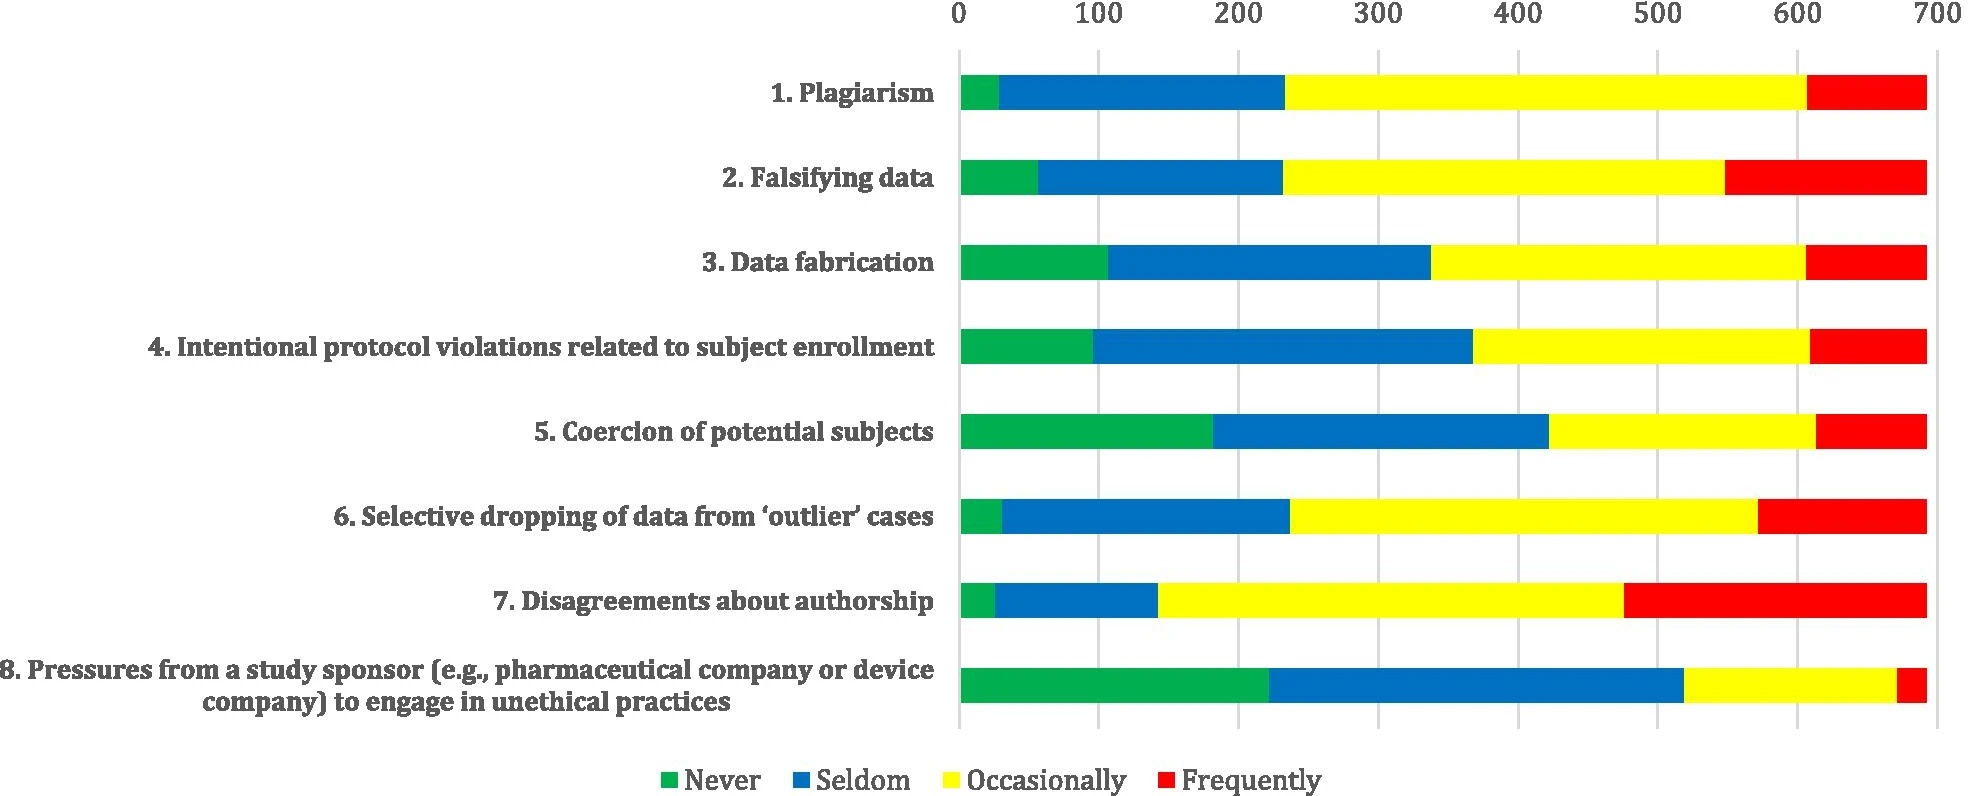 prevalence of scientific misconduct